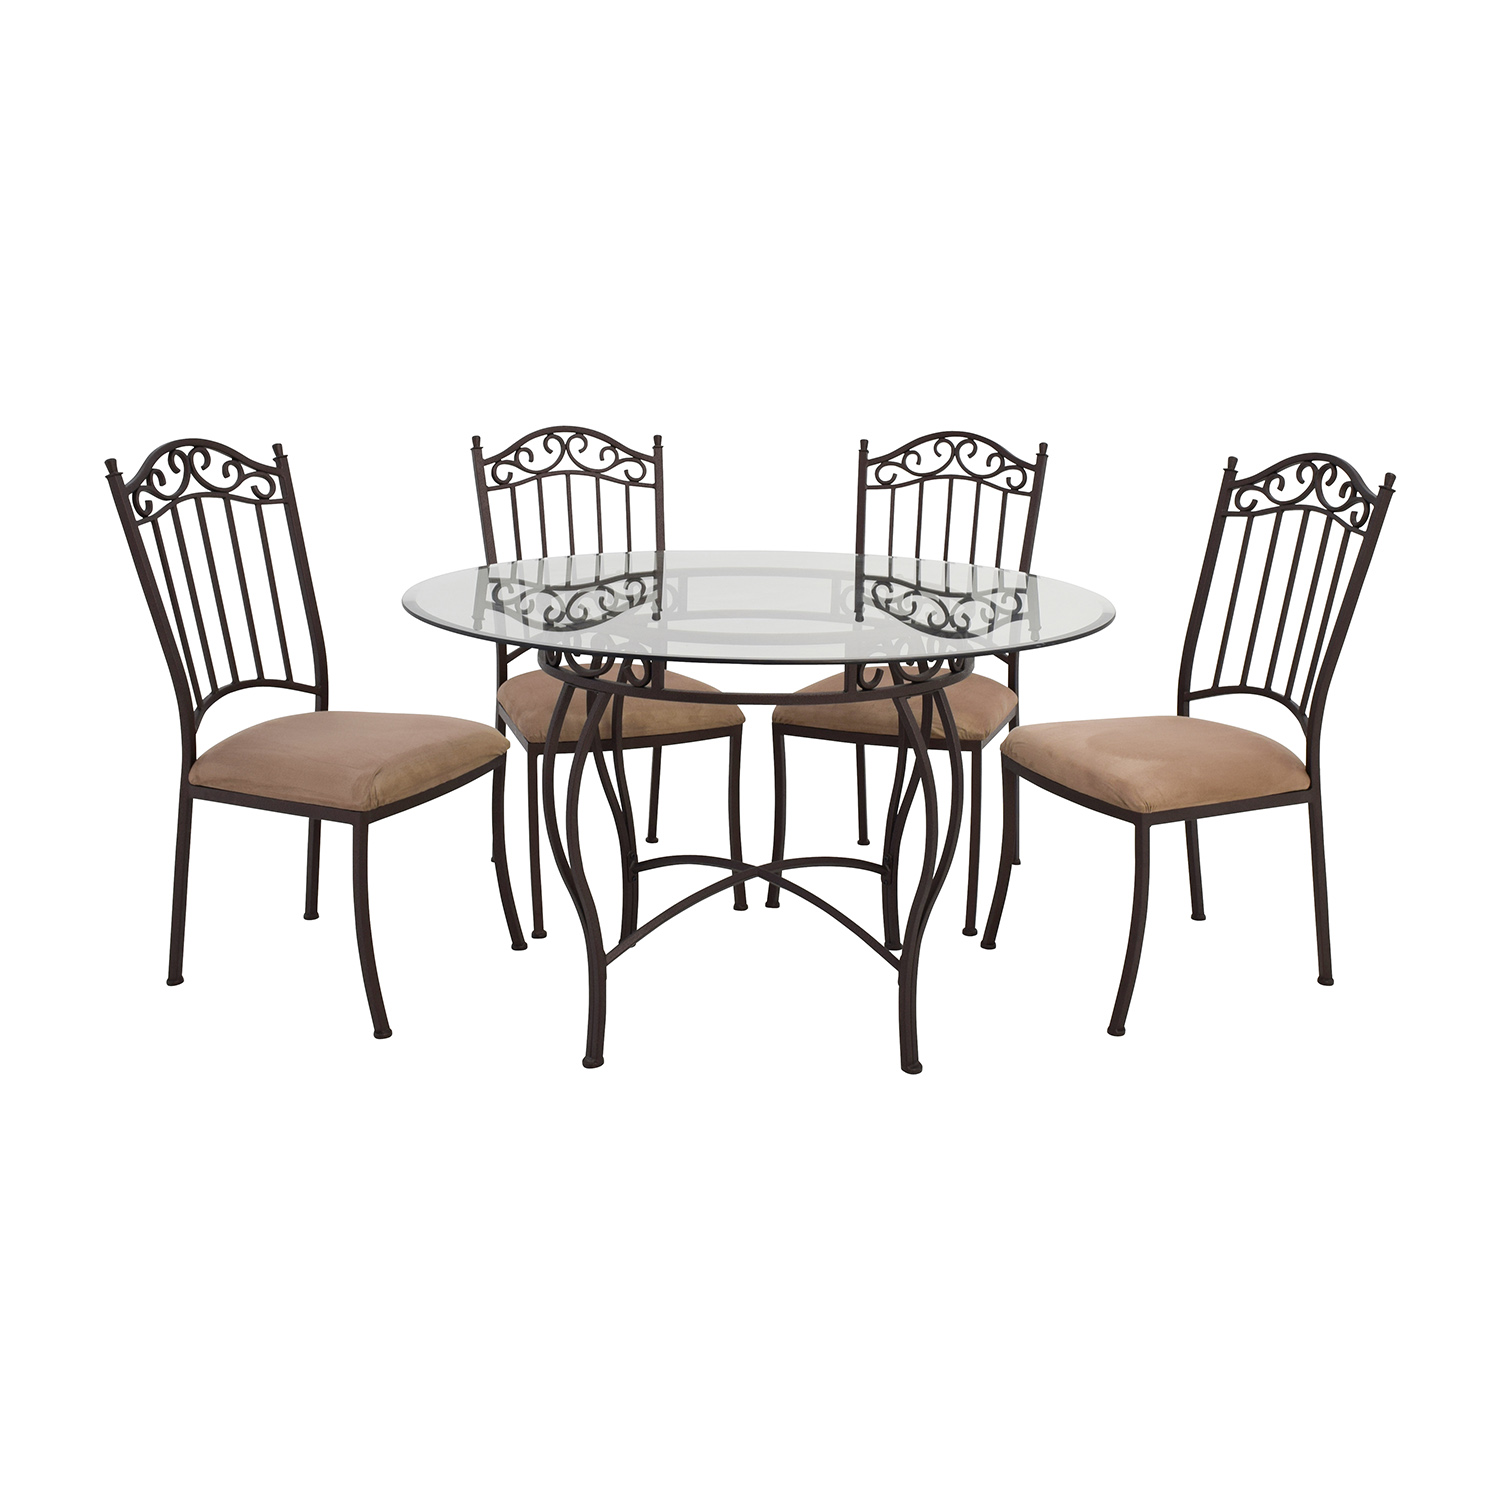 72 off wrought iron round glass table and chairs tables for Round glass dining table set